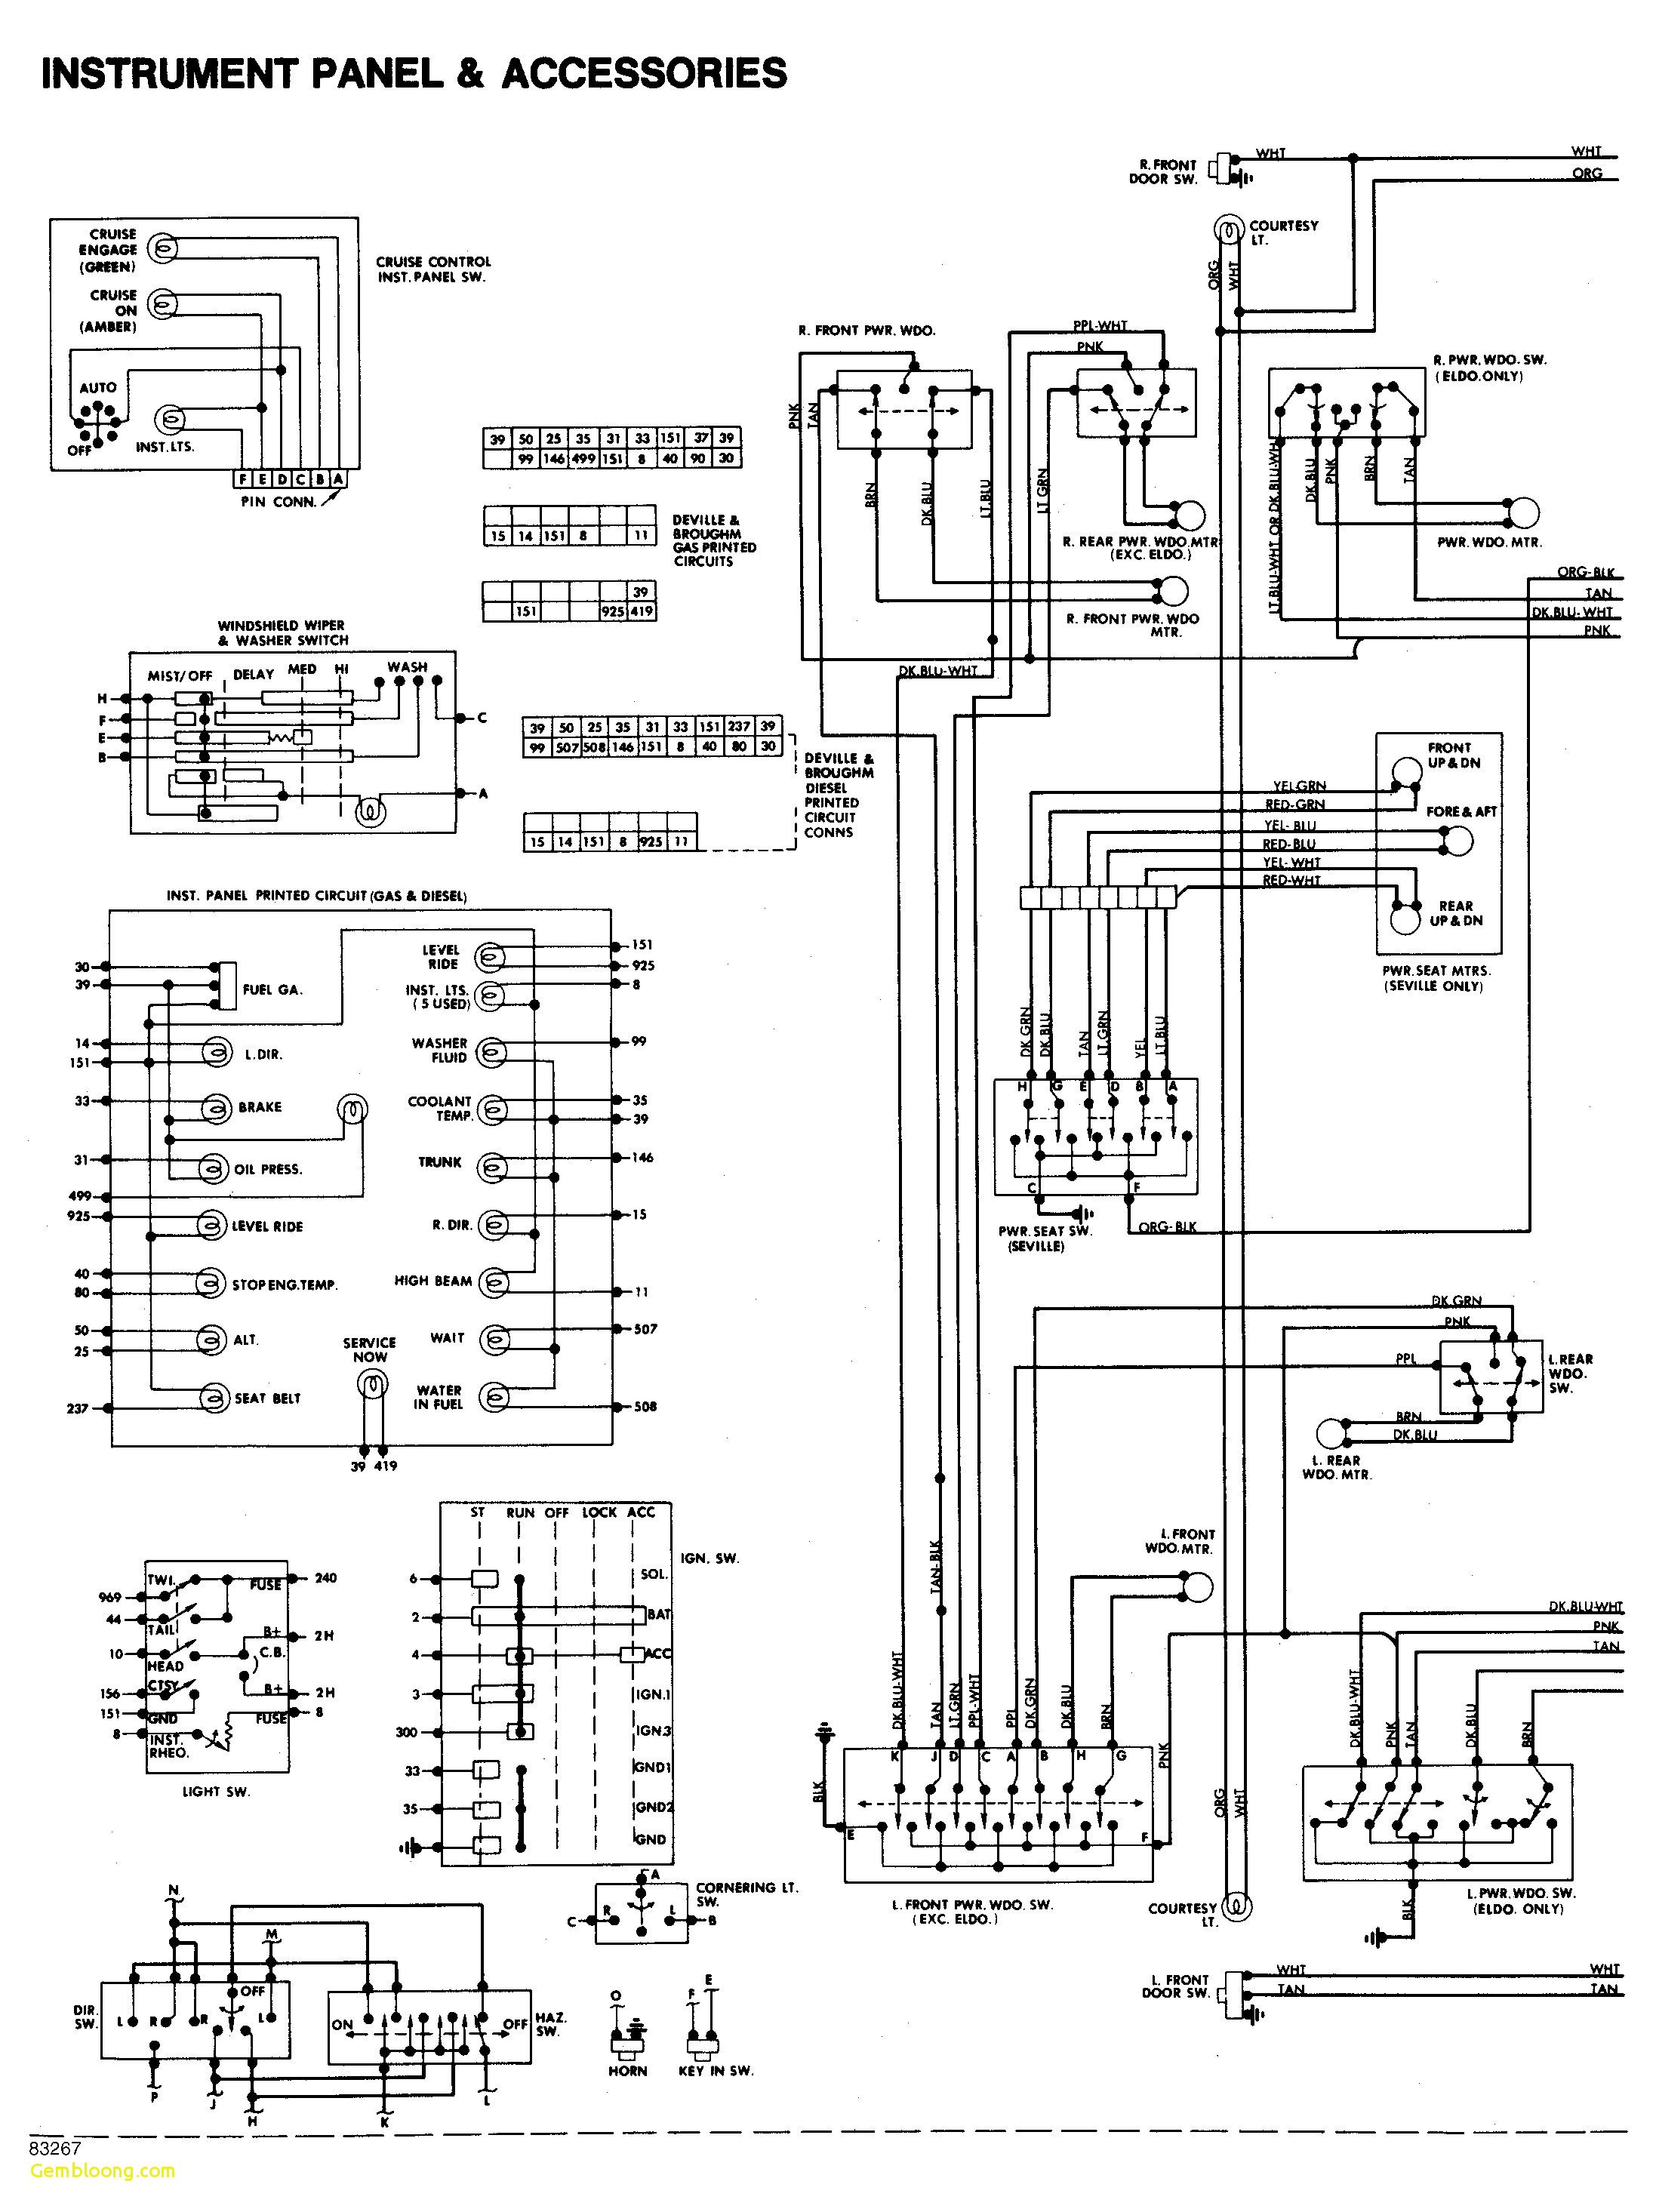 [DIAGRAM_5LK]  22 Stunning Free Vehicle Wiring Diagrams ,  https://bacamajalah.com/22-stunning-free-vehicle-wiring-di… | Electrical wiring  diagram, Electrical diagram, Honda accord | Honda Car Radio Wiring Diagram Free Picture |  | Pinterest